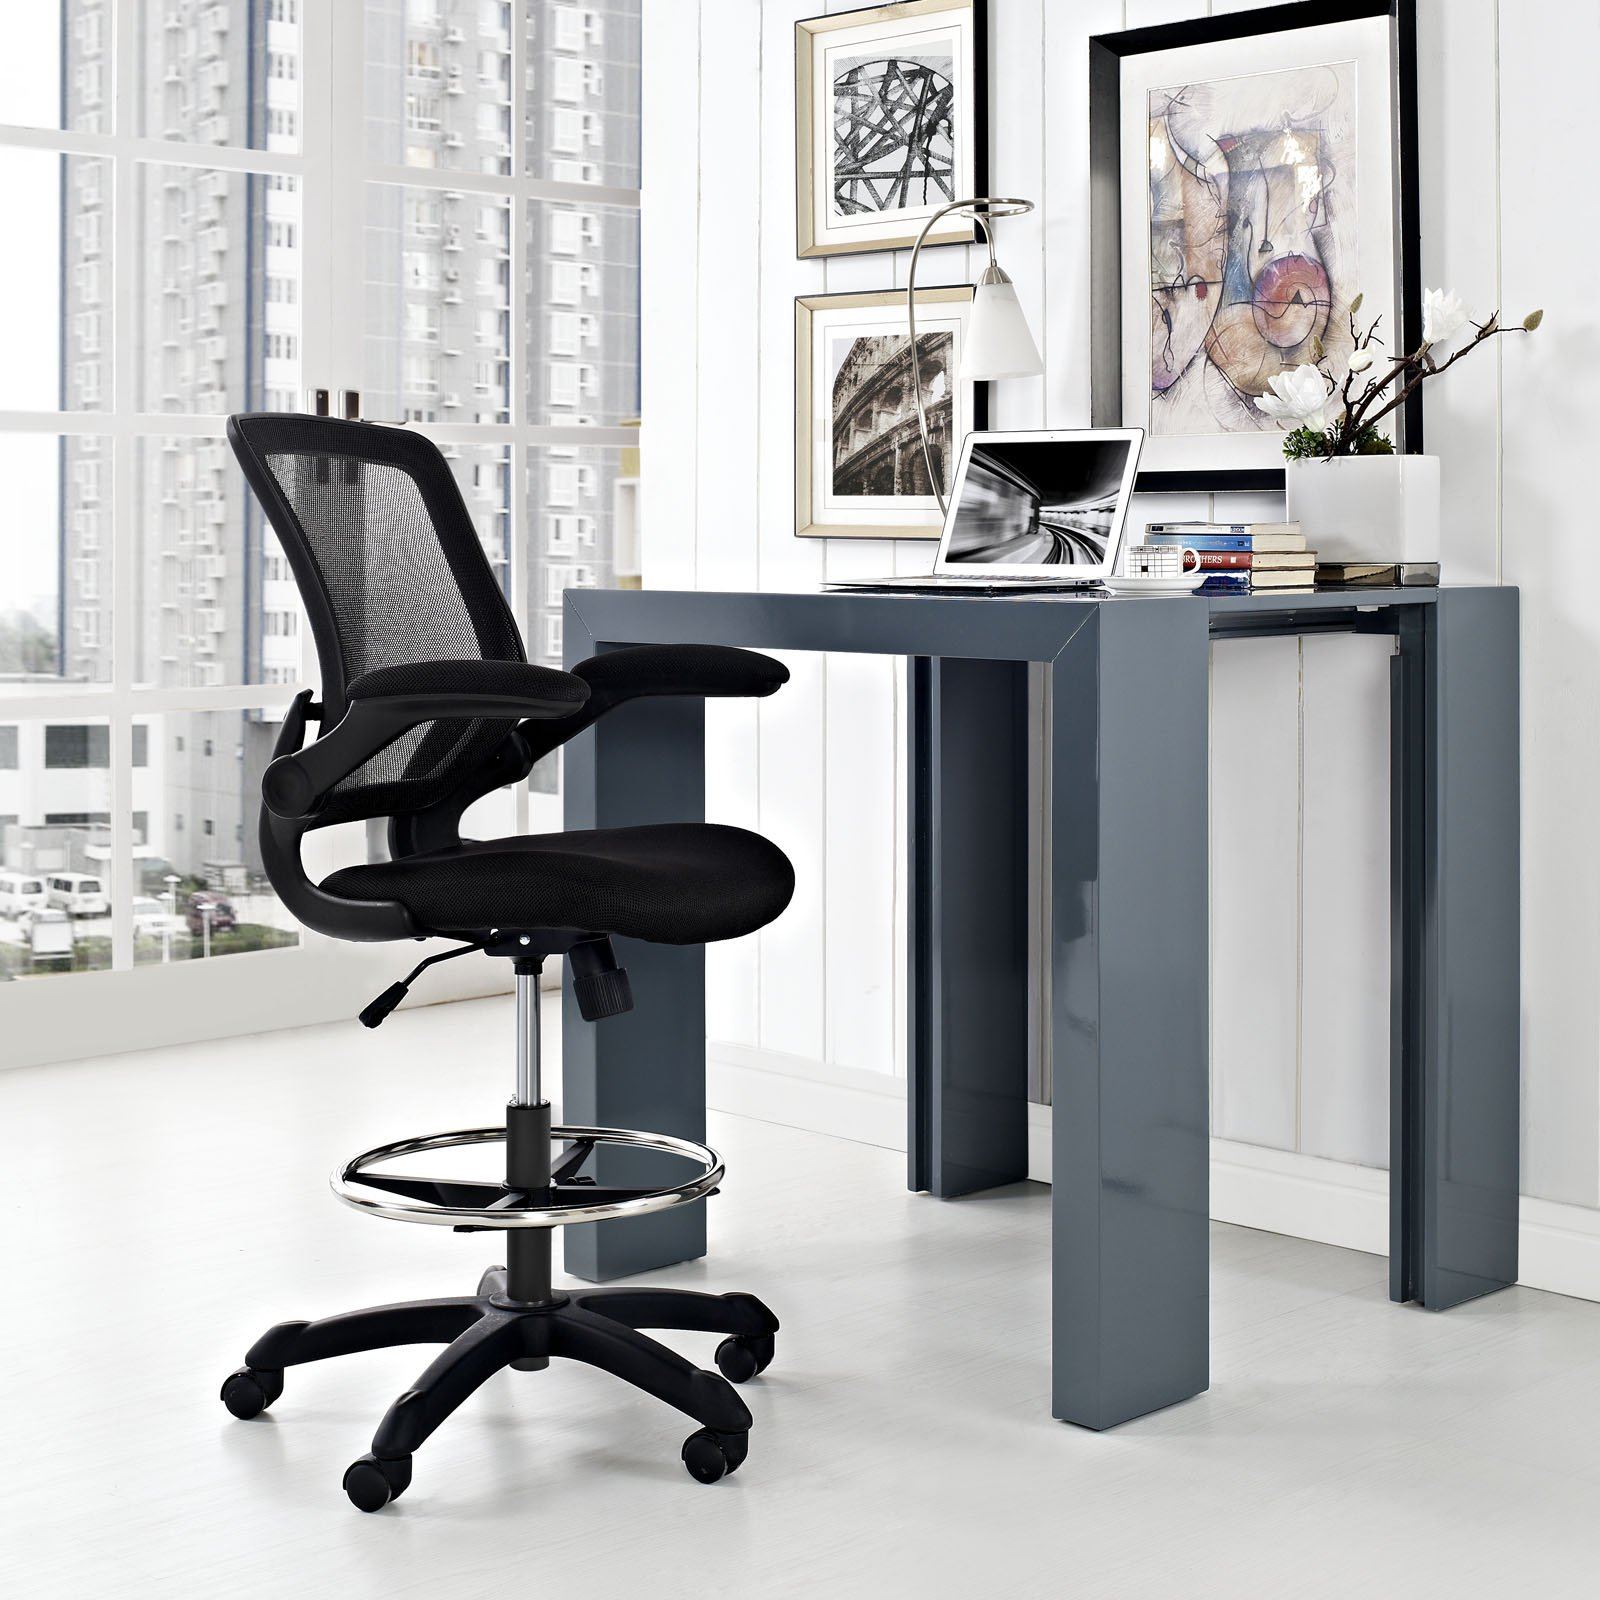 Tall Office Desk Furniture - hypnofitmaui.com